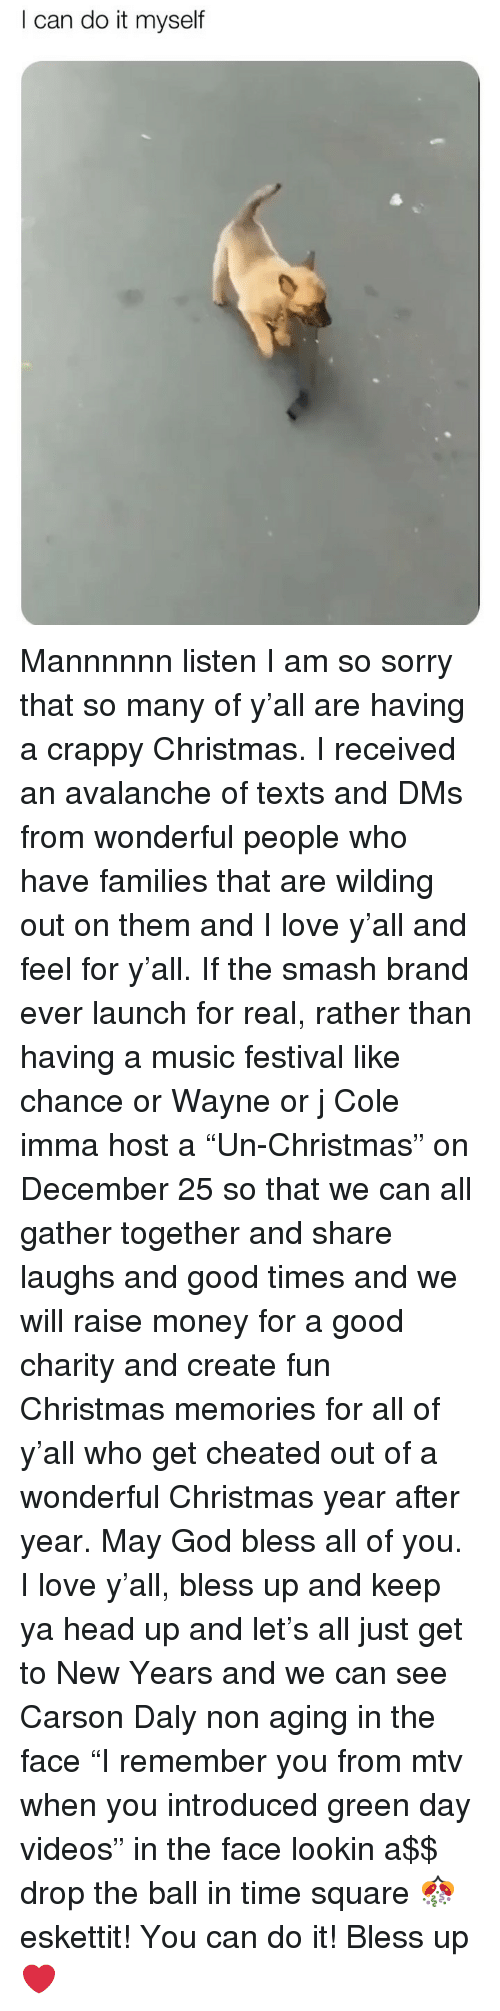 "Bless Up, Christmas, and God: I can do it myself Mannnnnn listen I am so sorry that so many of y'all are having a crappy Christmas. I received an avalanche of texts and DMs from wonderful people who have families that are wilding out on them and I love y'all and feel for y'all. If the smash brand ever launch for real, rather than having a music festival like chance or Wayne or j Cole imma host a ""Un-Christmas"" on December 25 so that we can all gather together and share laughs and good times and we will raise money for a good charity and create fun Christmas memories for all of y'all who get cheated out of a wonderful Christmas year after year. May God bless all of you. I love y'all, bless up and keep ya head up and let's all just get to New Years and we can see Carson Daly non aging in the face ""I remember you from mtv when you introduced green day videos"" in the face lookin a$$ drop the ball in time square 🎊 eskettit! You can do it! Bless up ❤️"